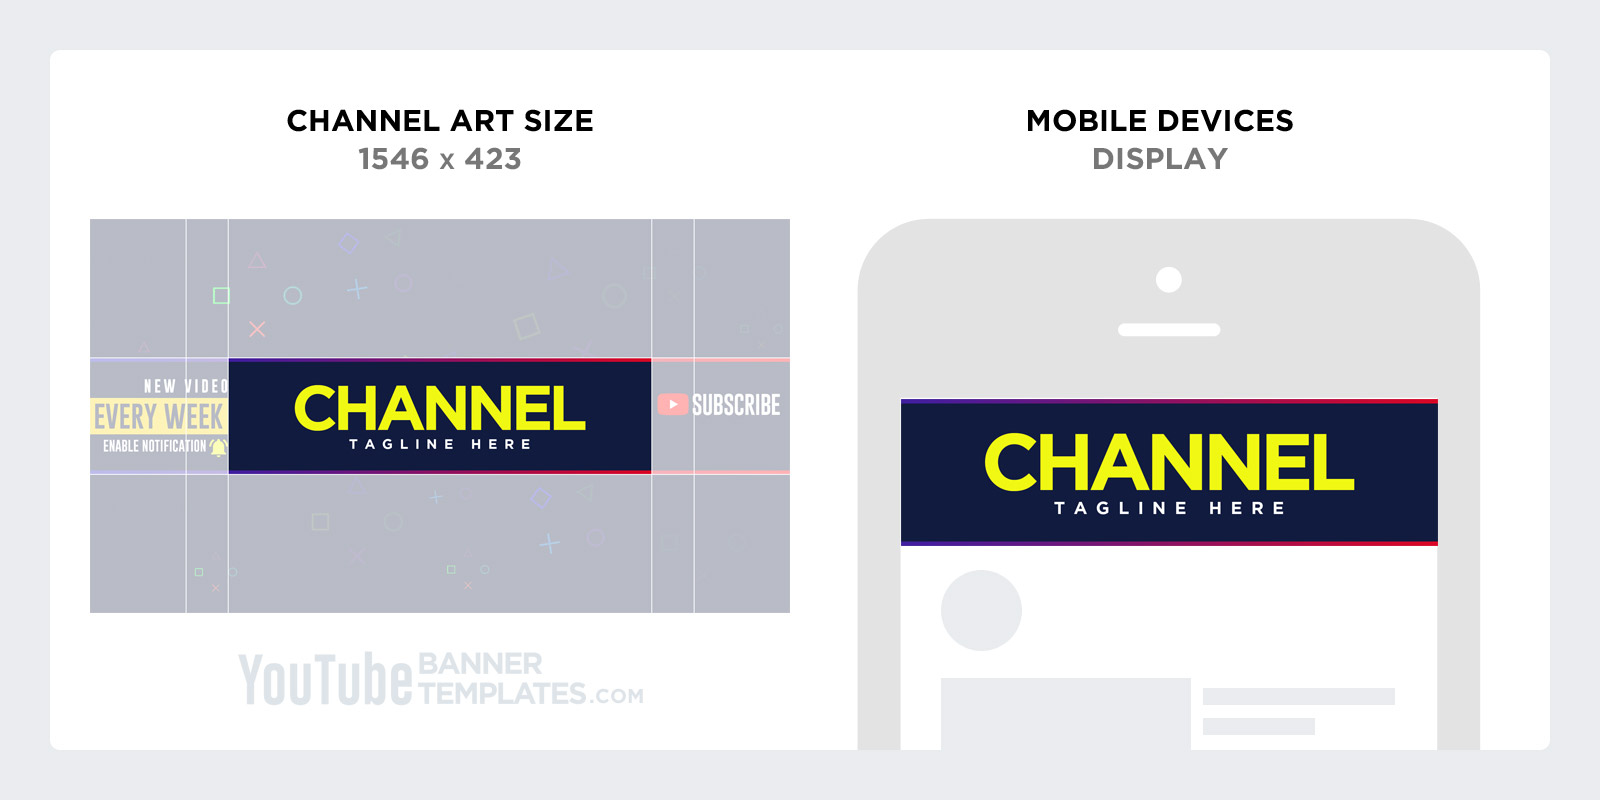 YouTube channel art Design for Mobile Phone